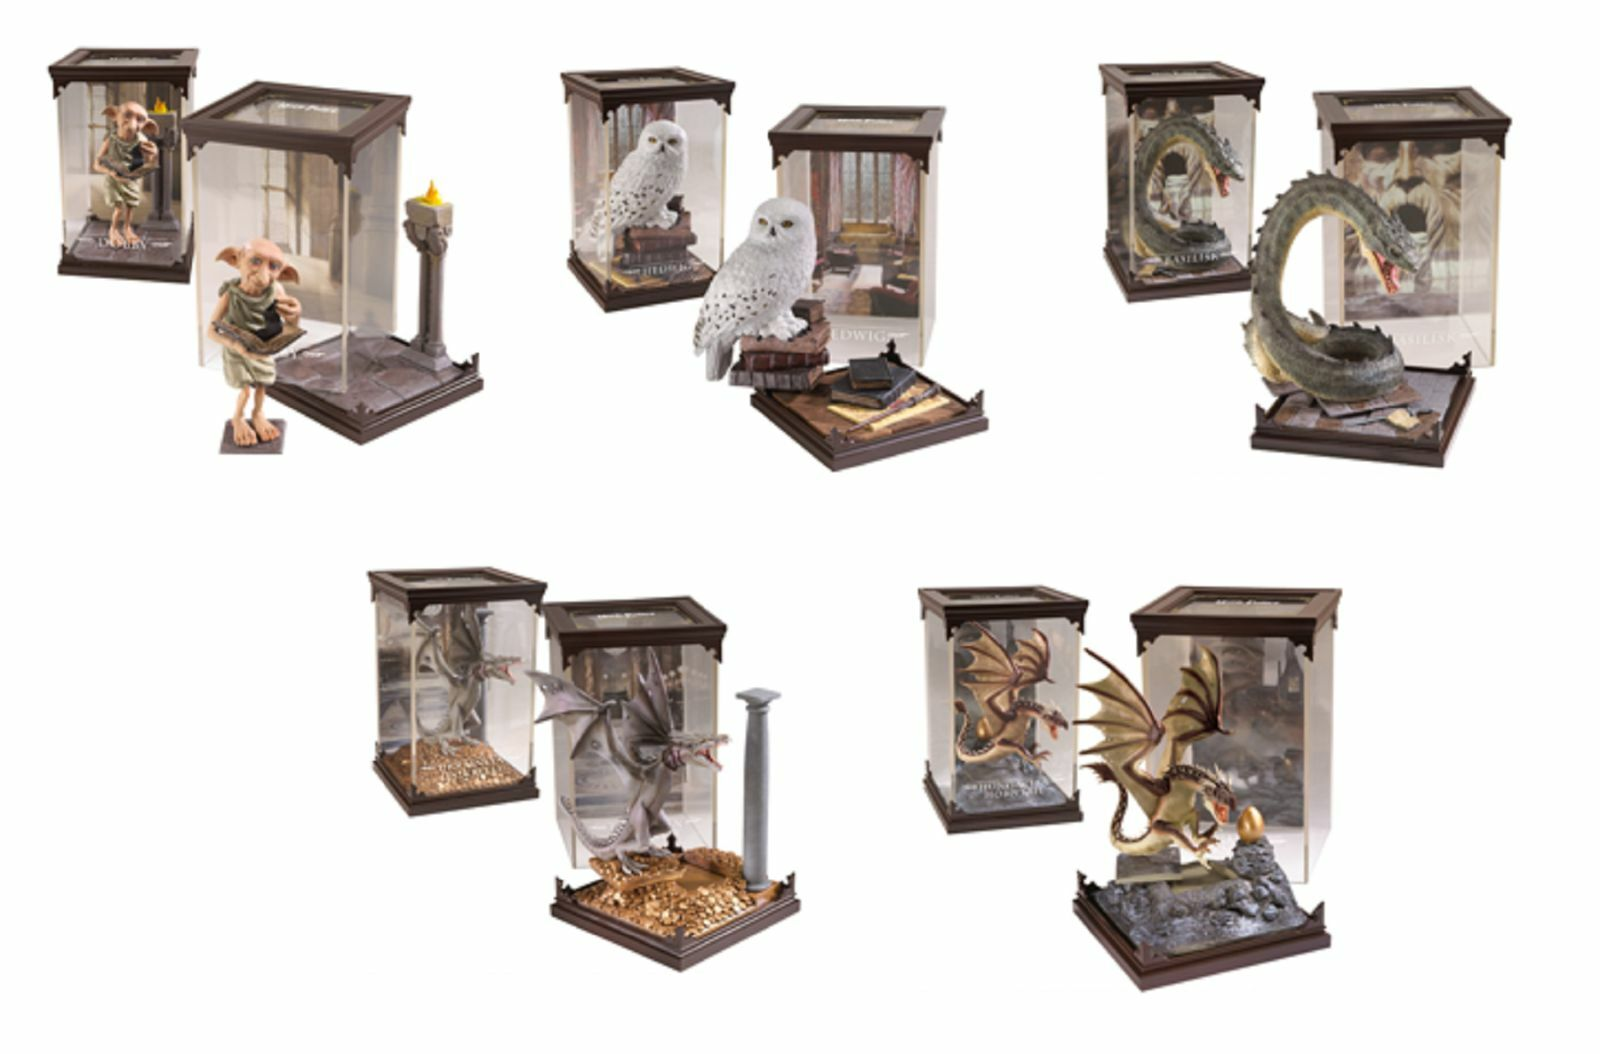 Official Harry Potter Magical Creatures In Display Case Noble Figure Film Gift